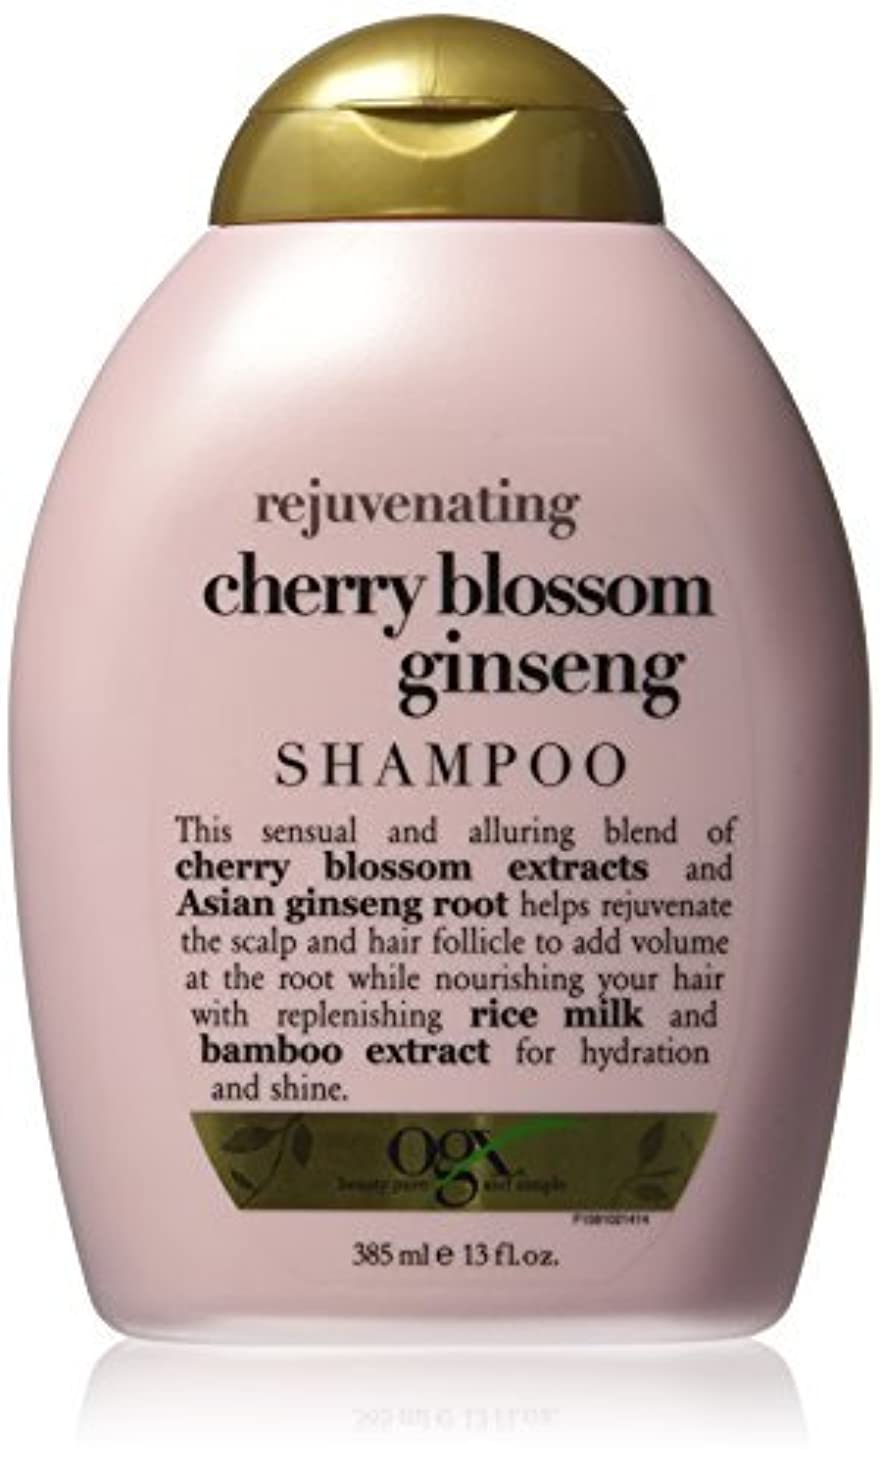 OGX Shampoo, Rejuvenating Cherry Blossom Ginseng, 13oz by OGX [並行輸入品]